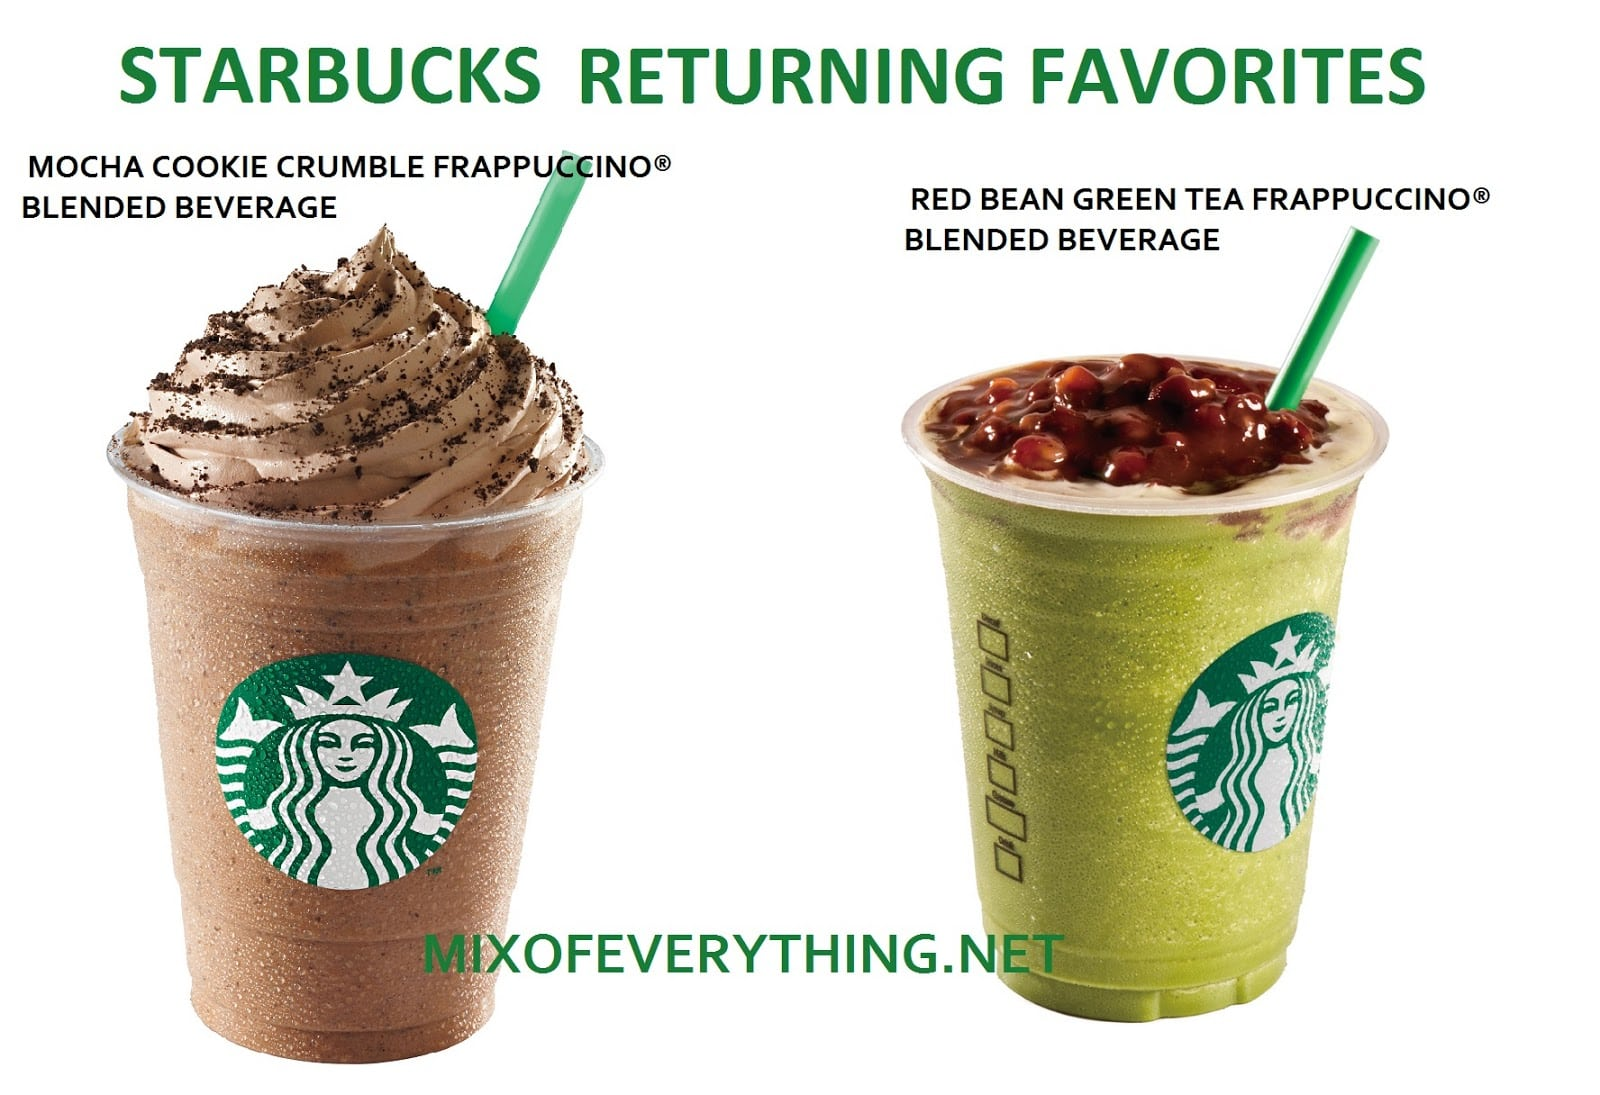 Starbucks Brings Back Mocha Cookie Crumble And Red Bean Green Tea